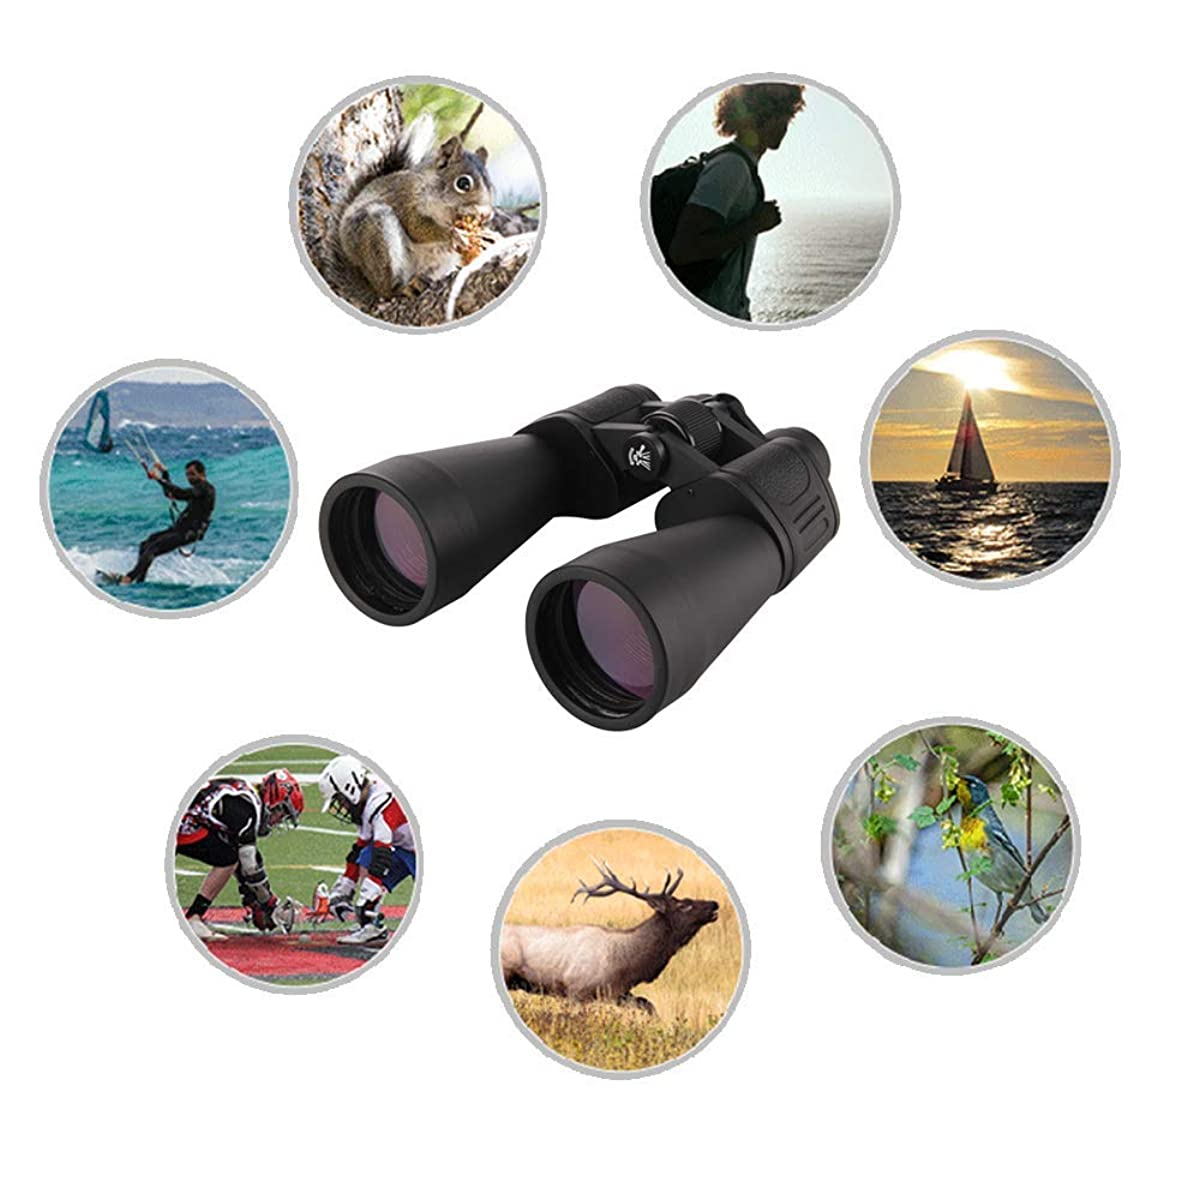 ZYG.GG Double-Tube Adjustable Telescope Folding Telescope Pocket Binocular Small Night Vision Binoculars Waterproof Hiking Hunting Sightseeing with Carrying Case